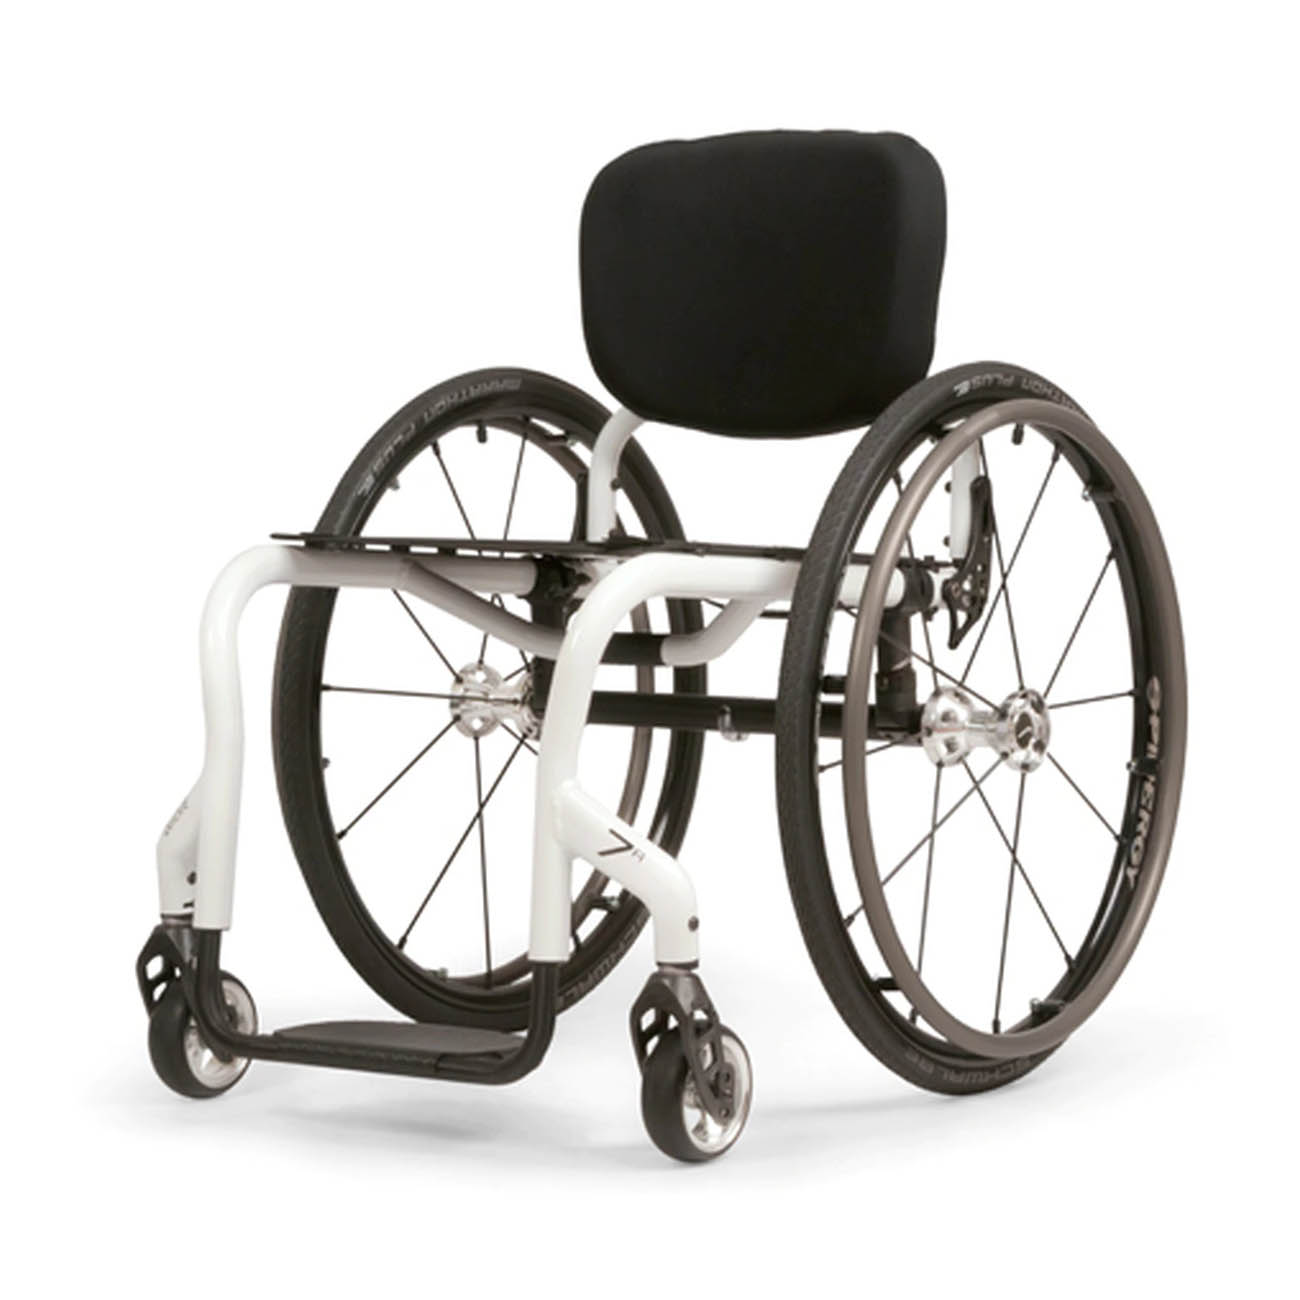 Quickie 7RS rigid ultralight manual wheelchair